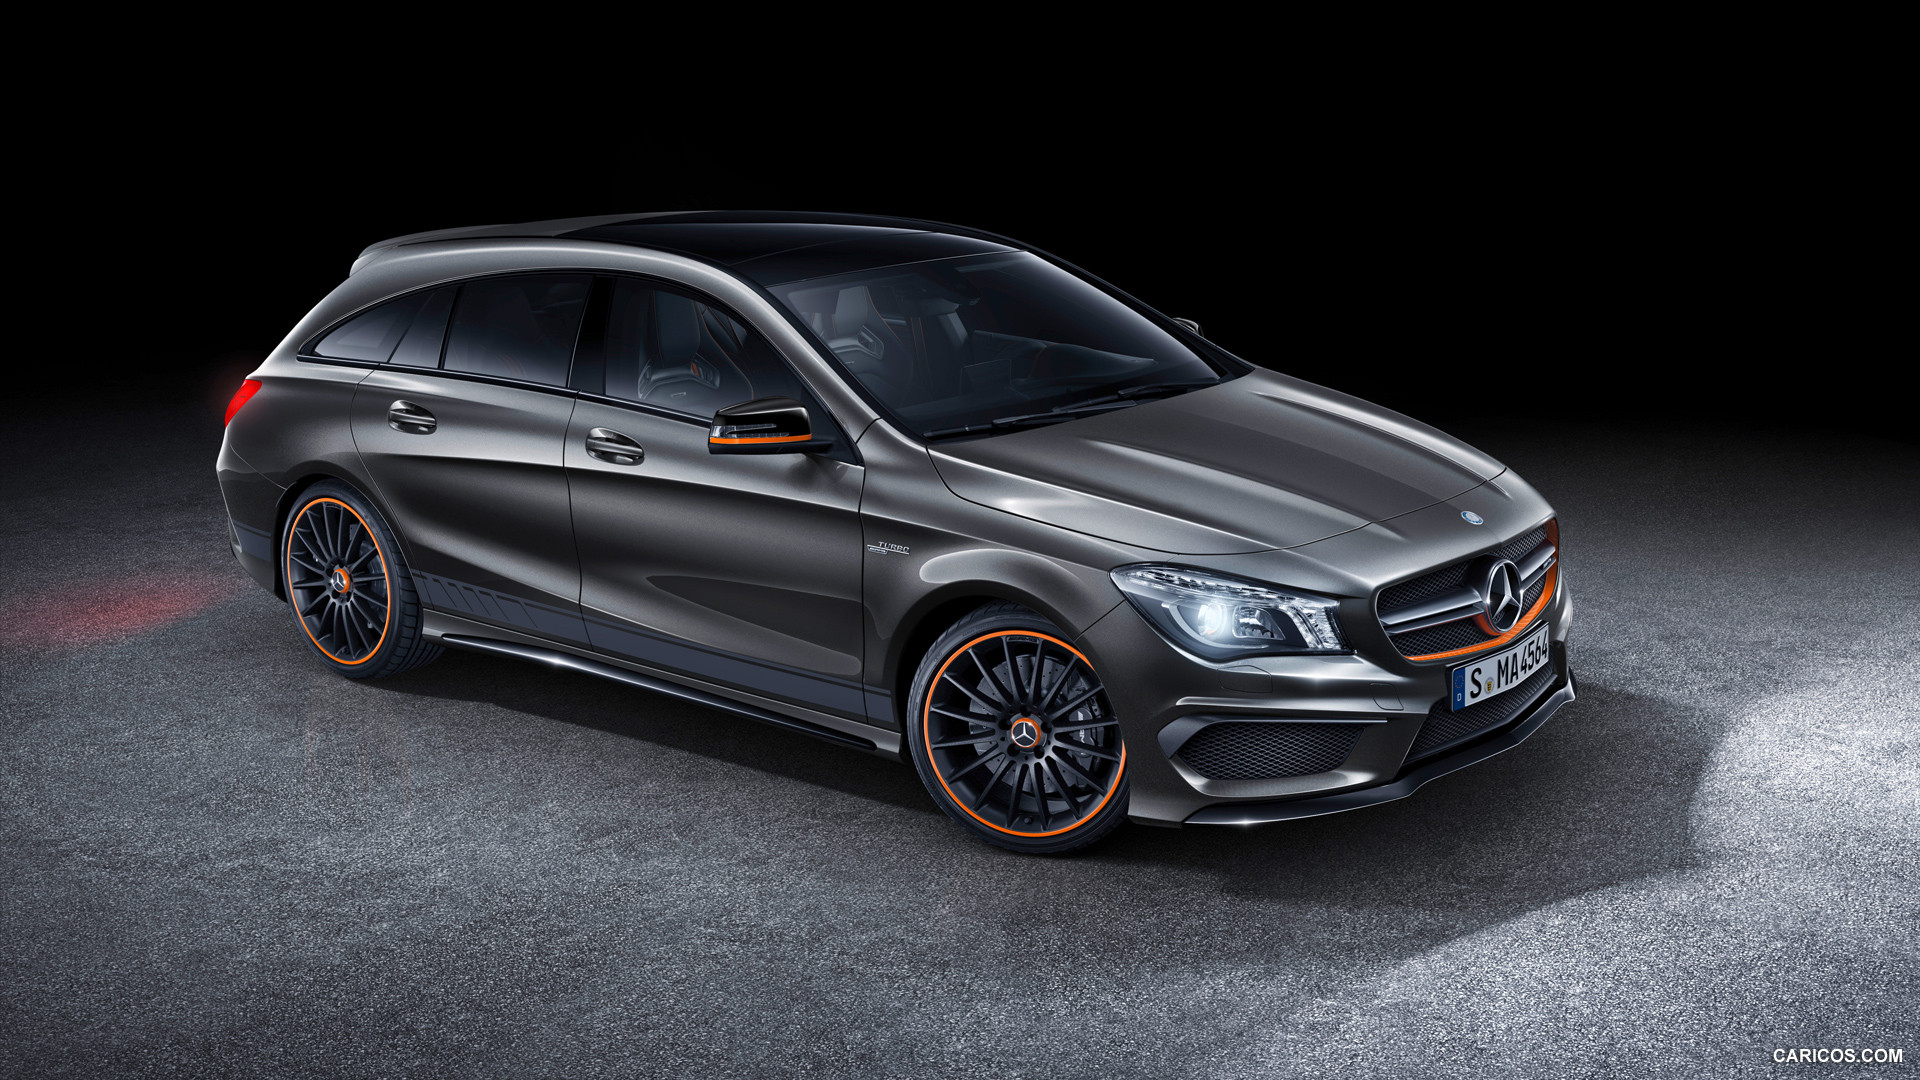 2015 Mercedes Benz CLA 45 AMG Shooting Brake OrangeArt   Side HD 1920x1080